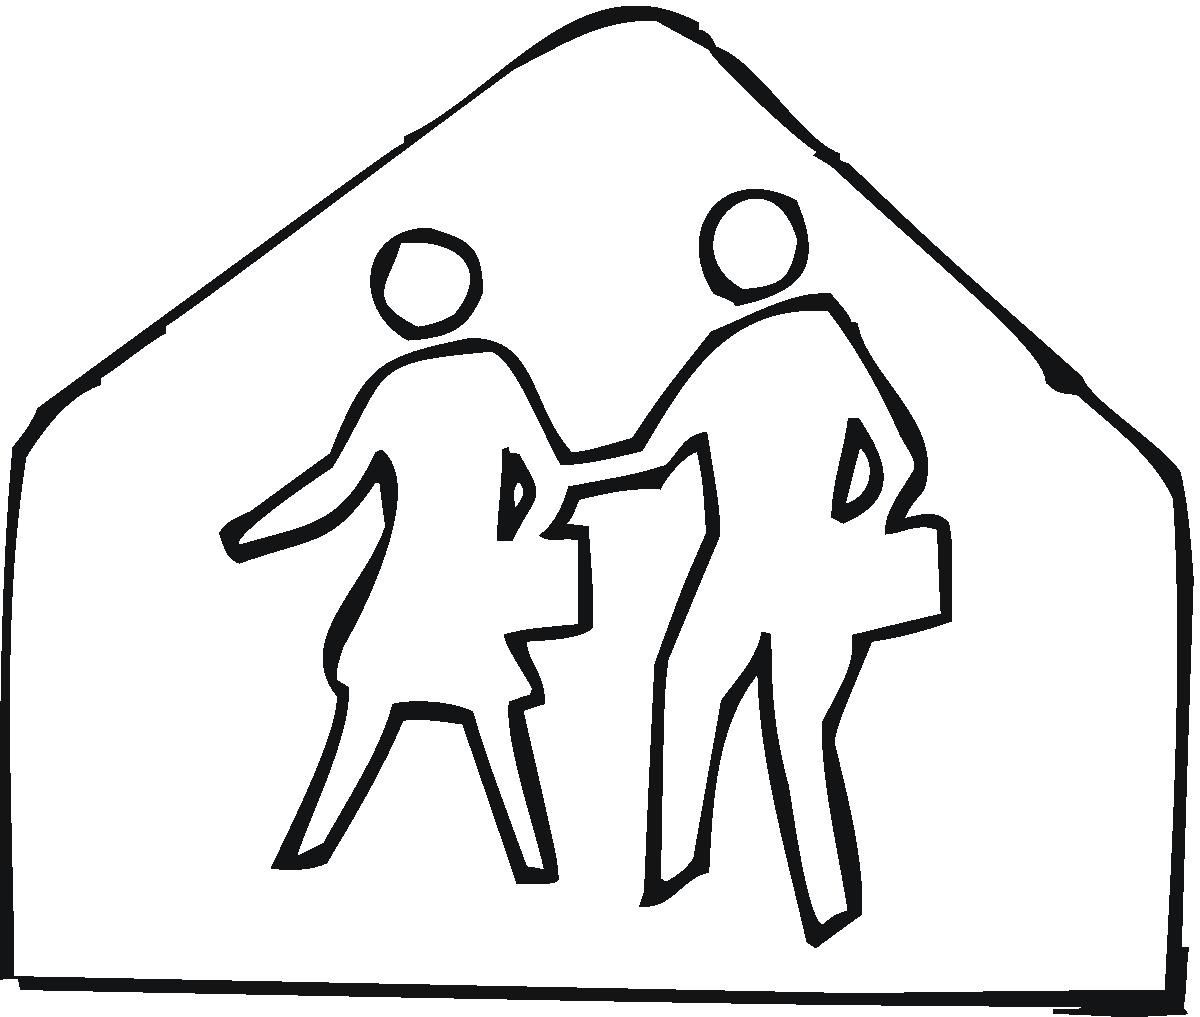 Road Signs Coloring Pages At Getcolorings